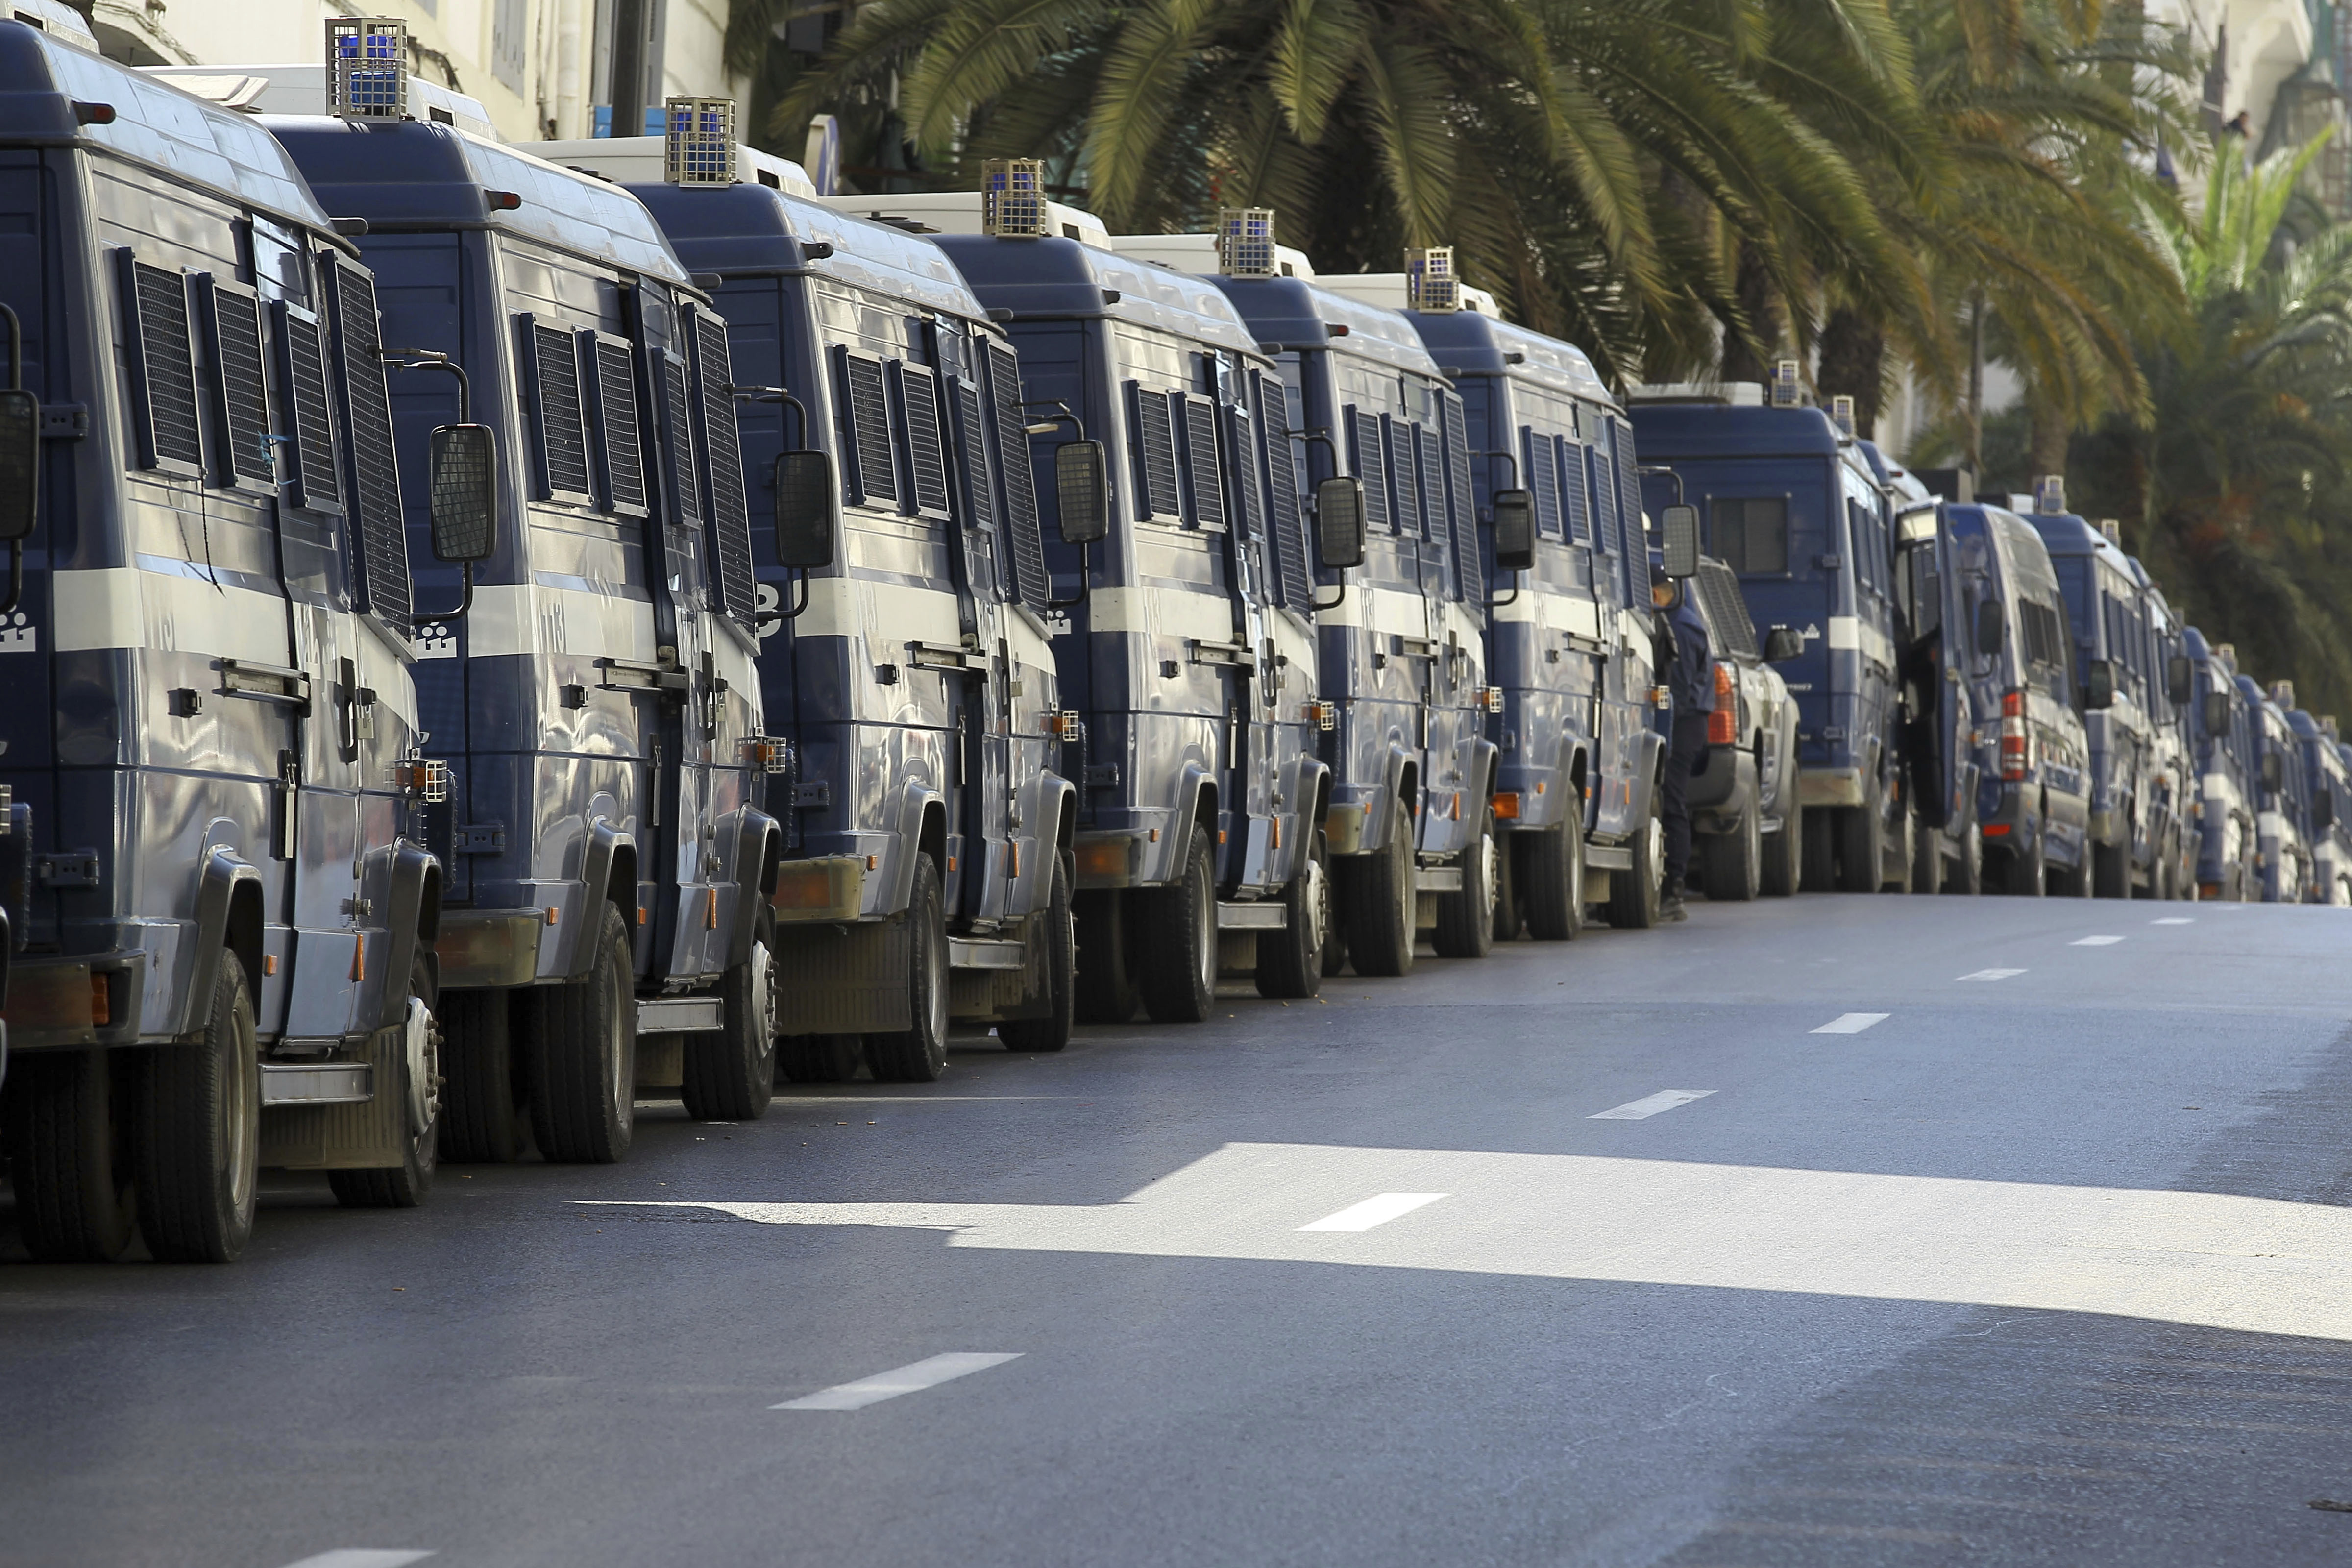 Riot police vans are lining streets around Algeria's capital during a protest in Algiers, Algeria, March 15, 2019.